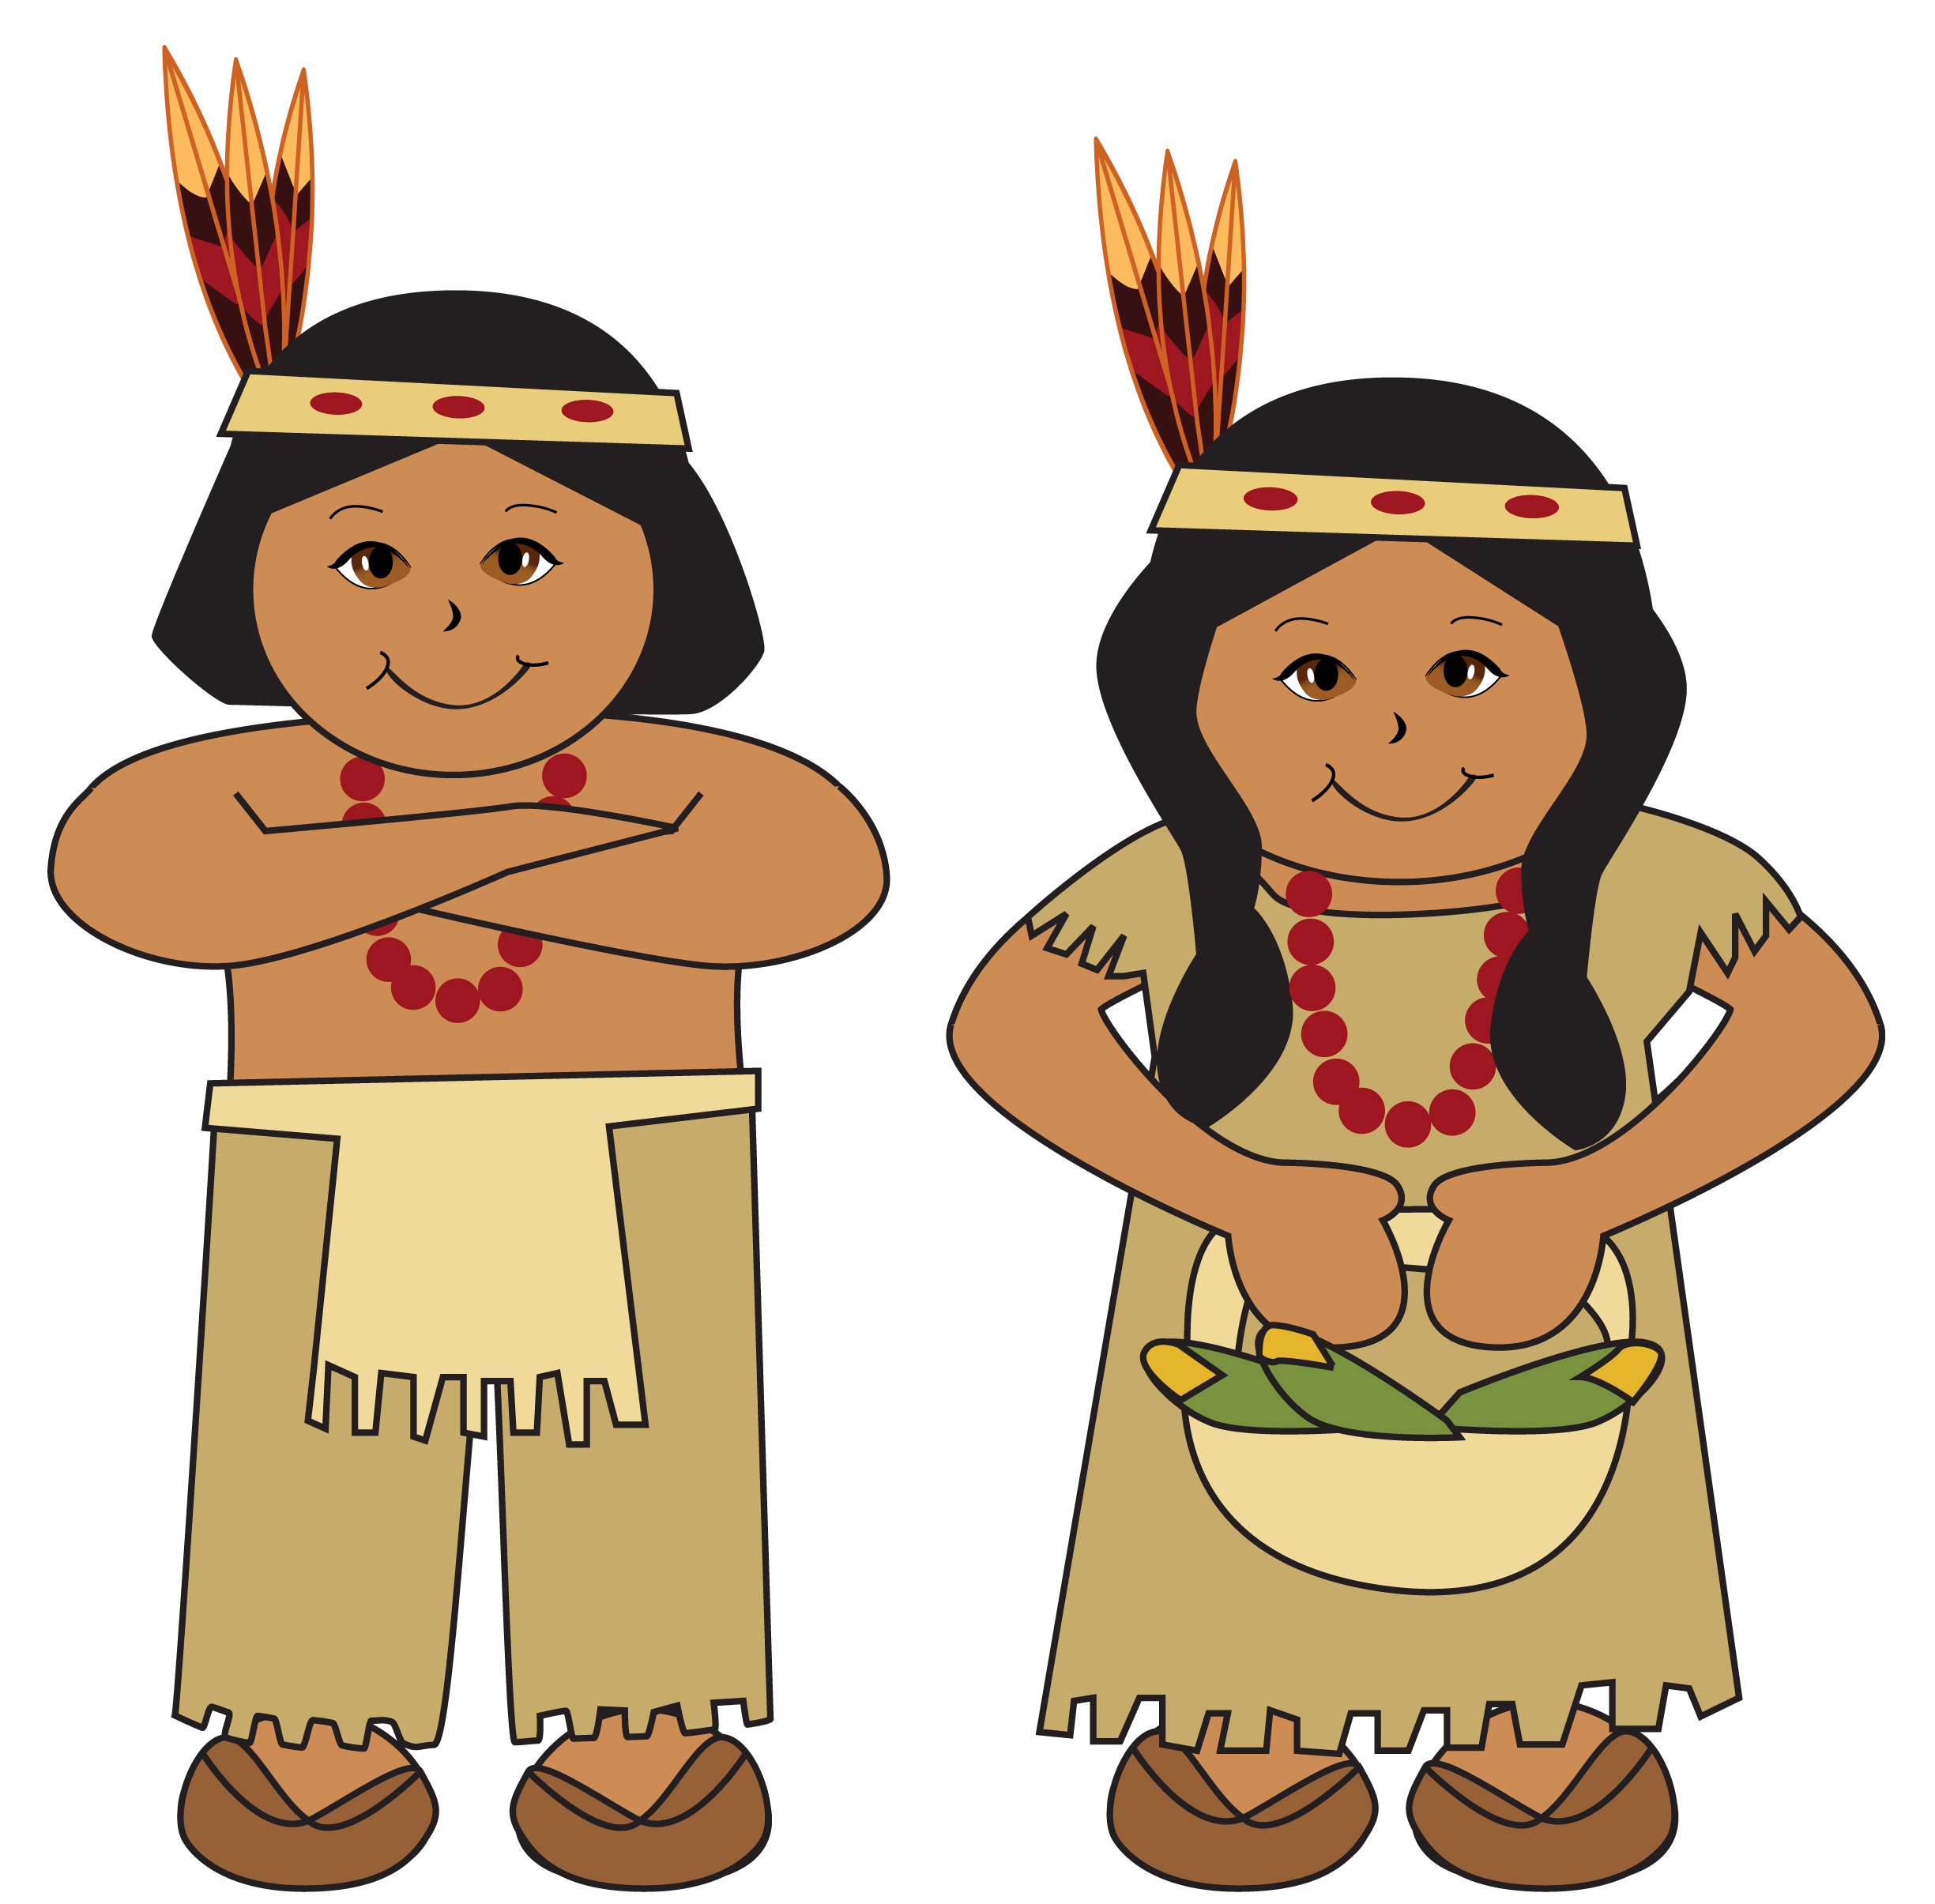 native americans clipart picture indian pinterest native rh pinterest com american indian clipart symbols native american indian clipart